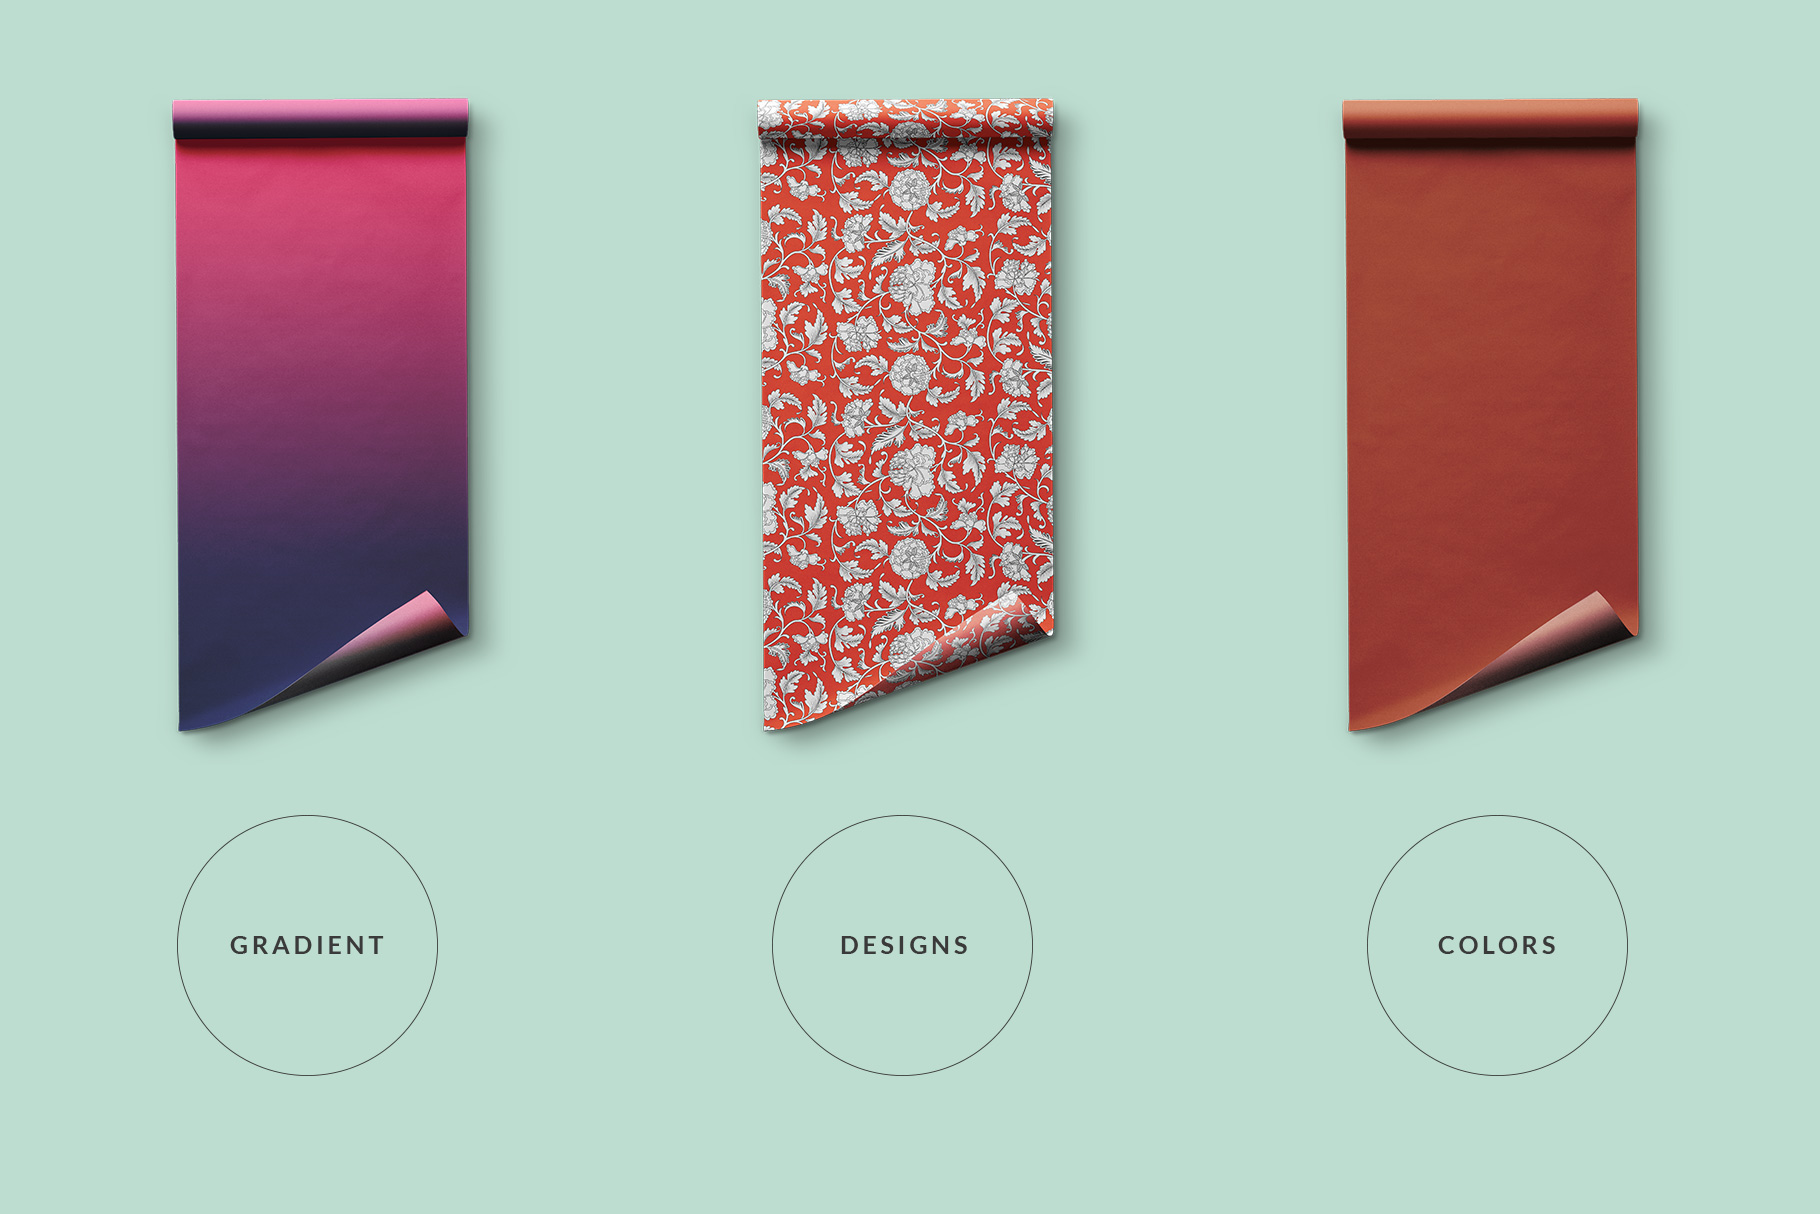 types of the top view wrapping paper roll mockup